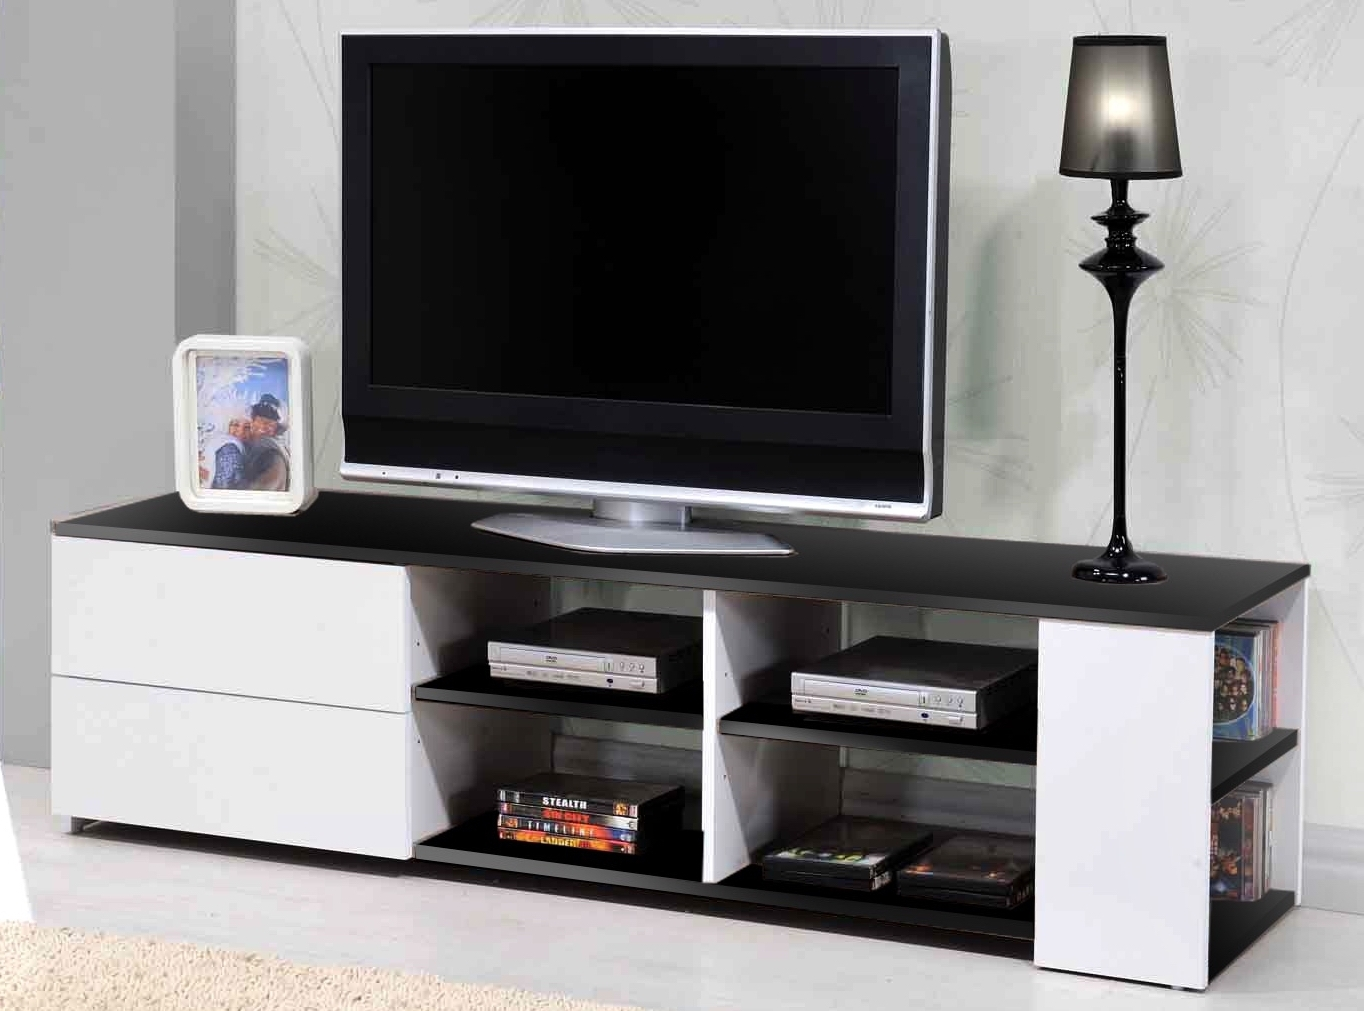 meuble tv 2 tiroirs noir et blanc atly. Black Bedroom Furniture Sets. Home Design Ideas